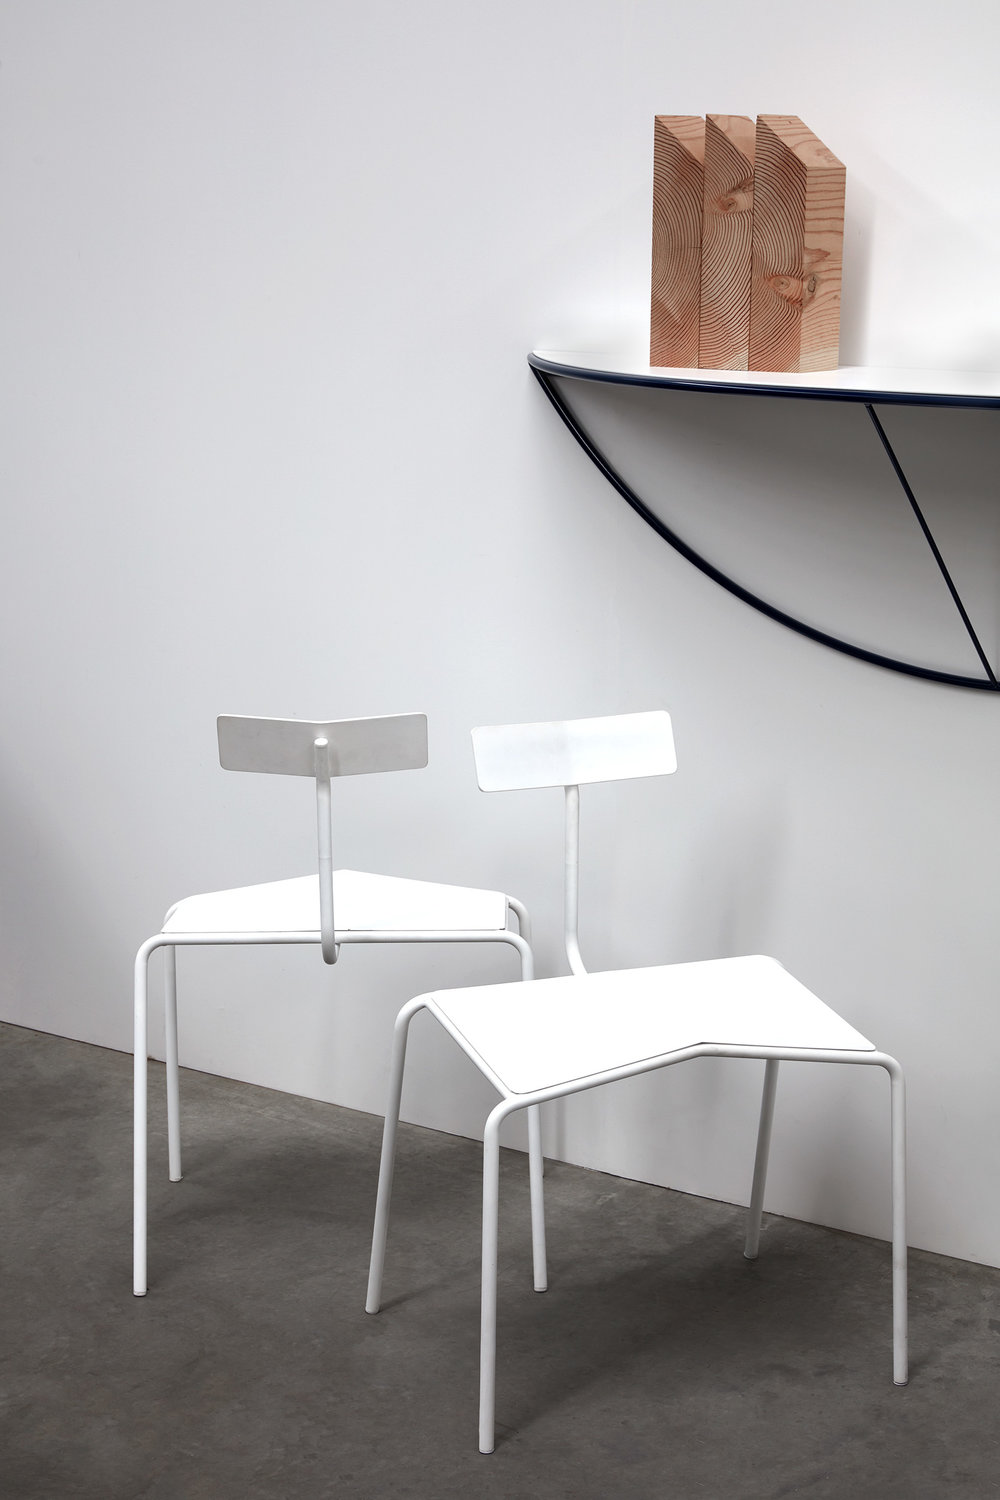 Cassini shelf above with paper chair in white